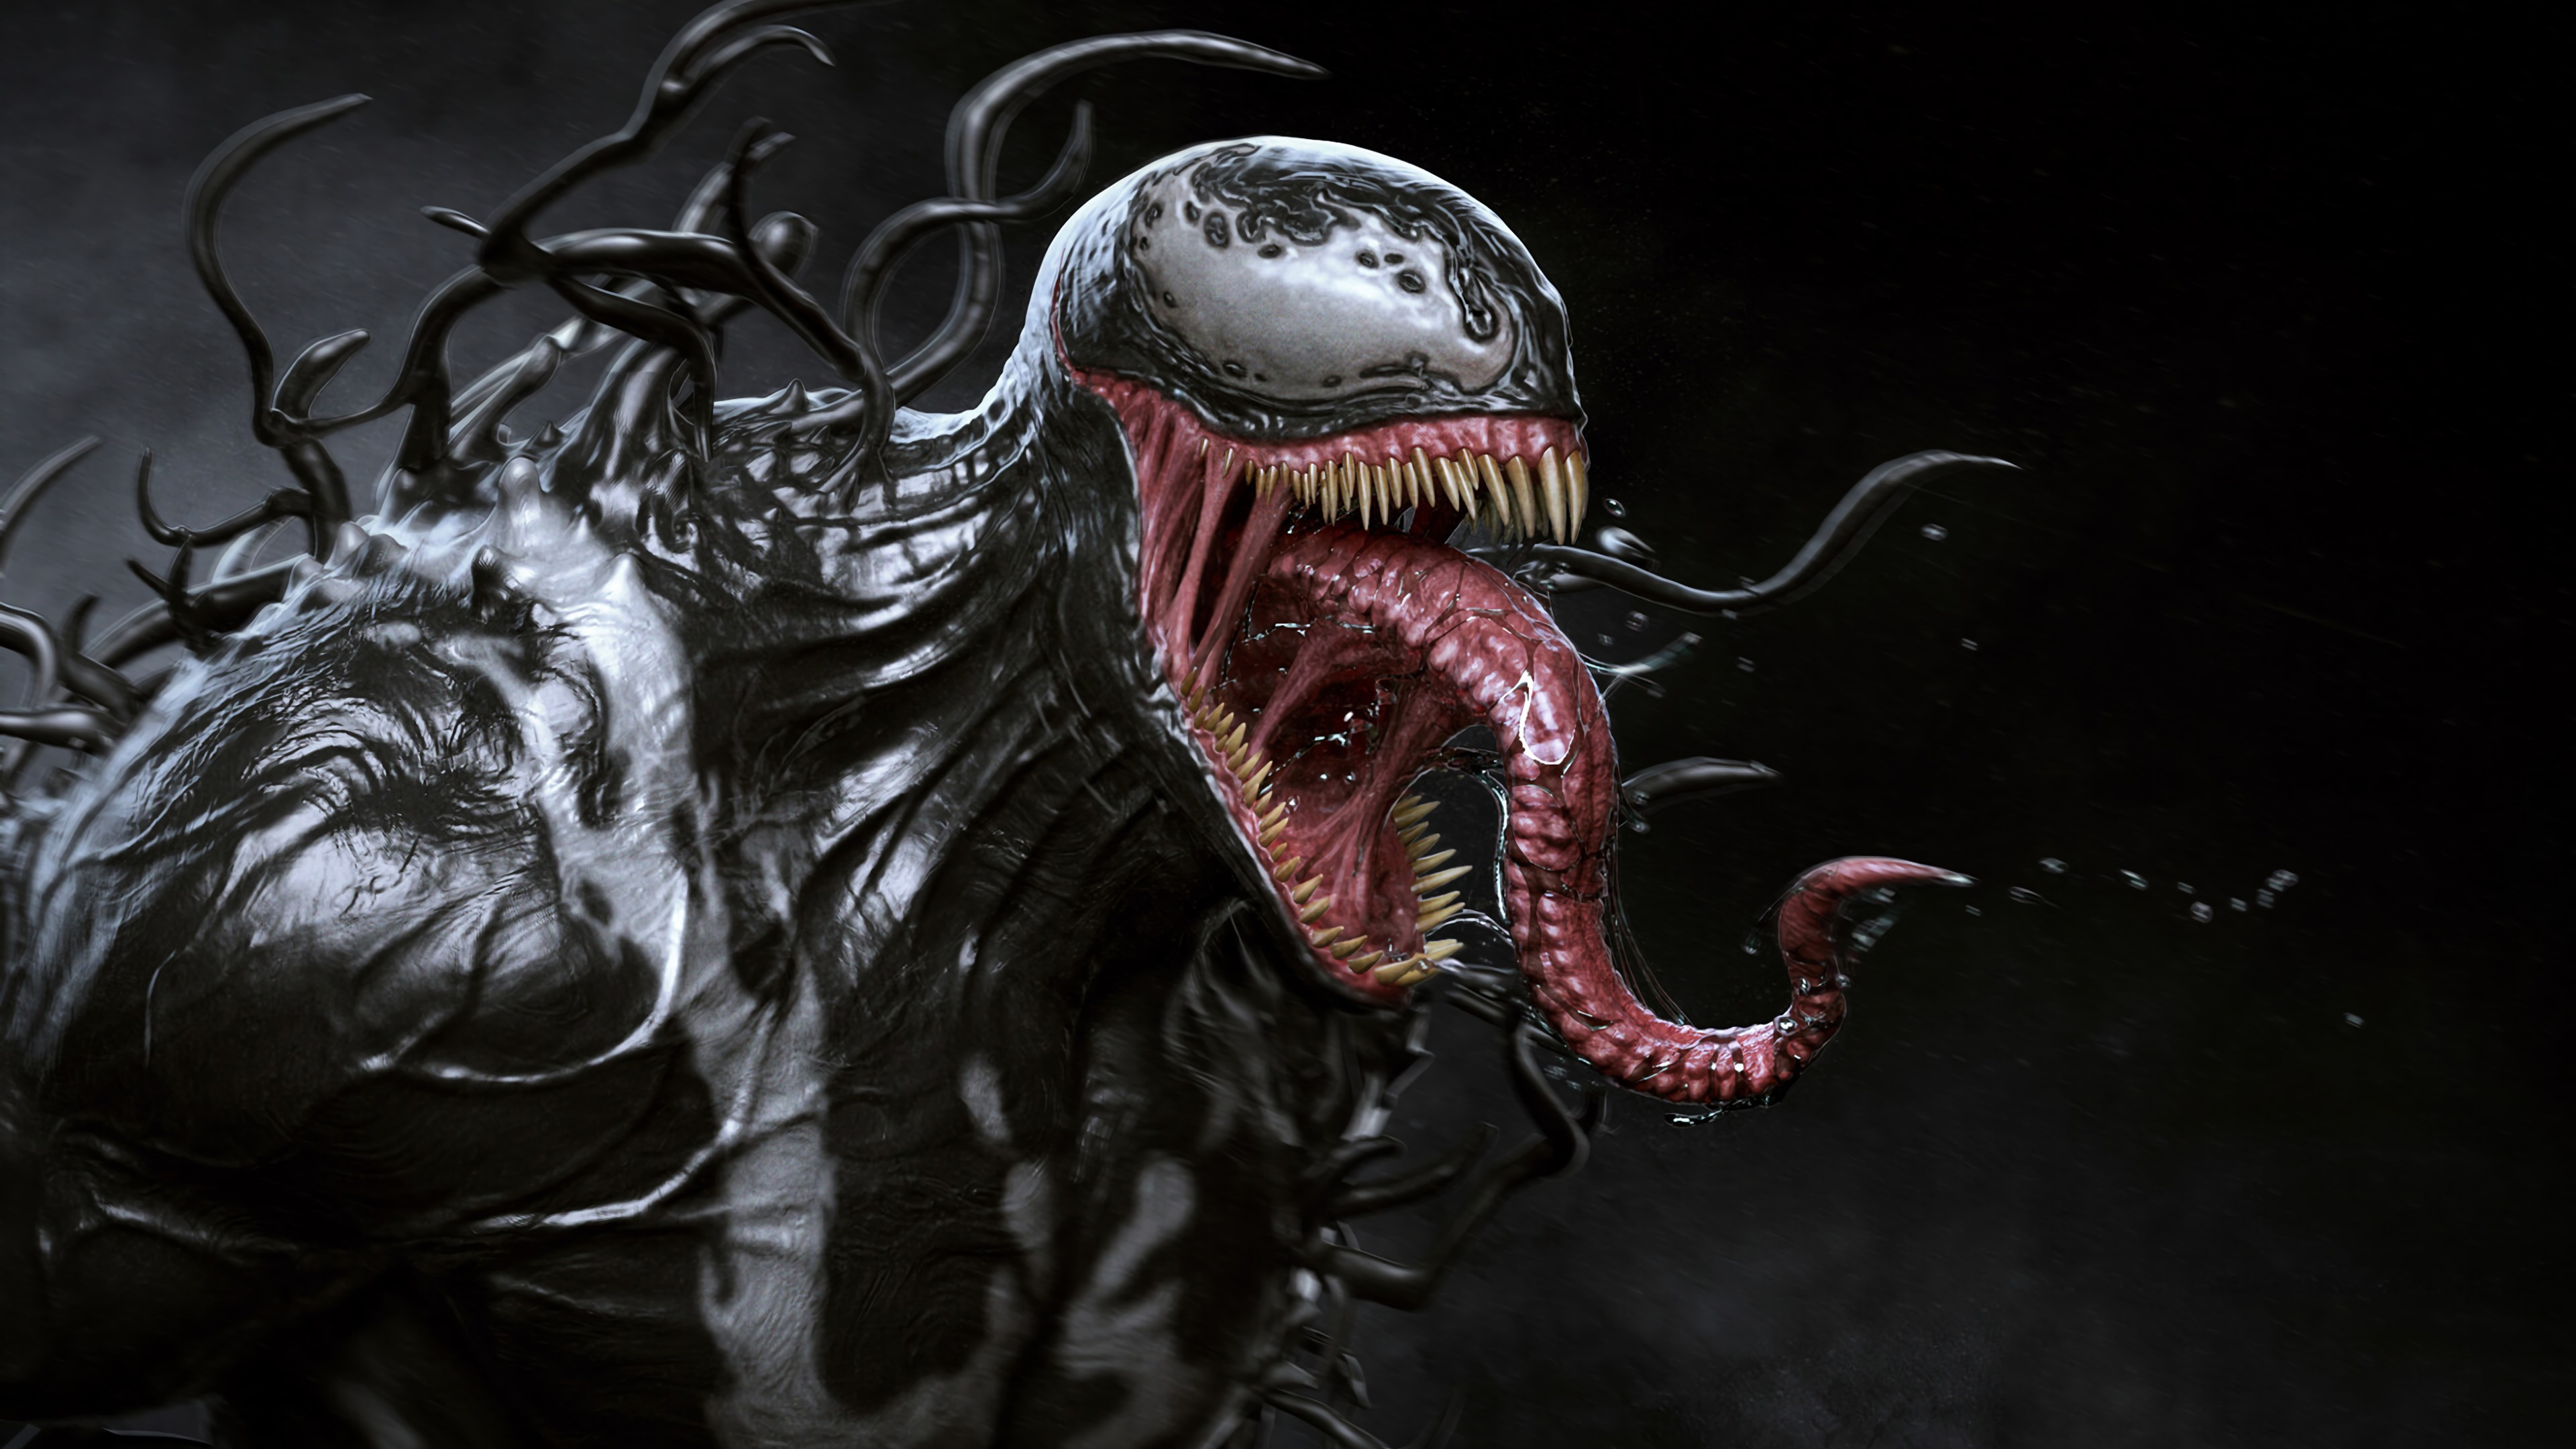 venom new 1568054734 - Venom new - Venom wallpapers, superheroes wallpapers, hd-wallpapers, digital art wallpapers, artwork wallpapers, 4k-wallpapers